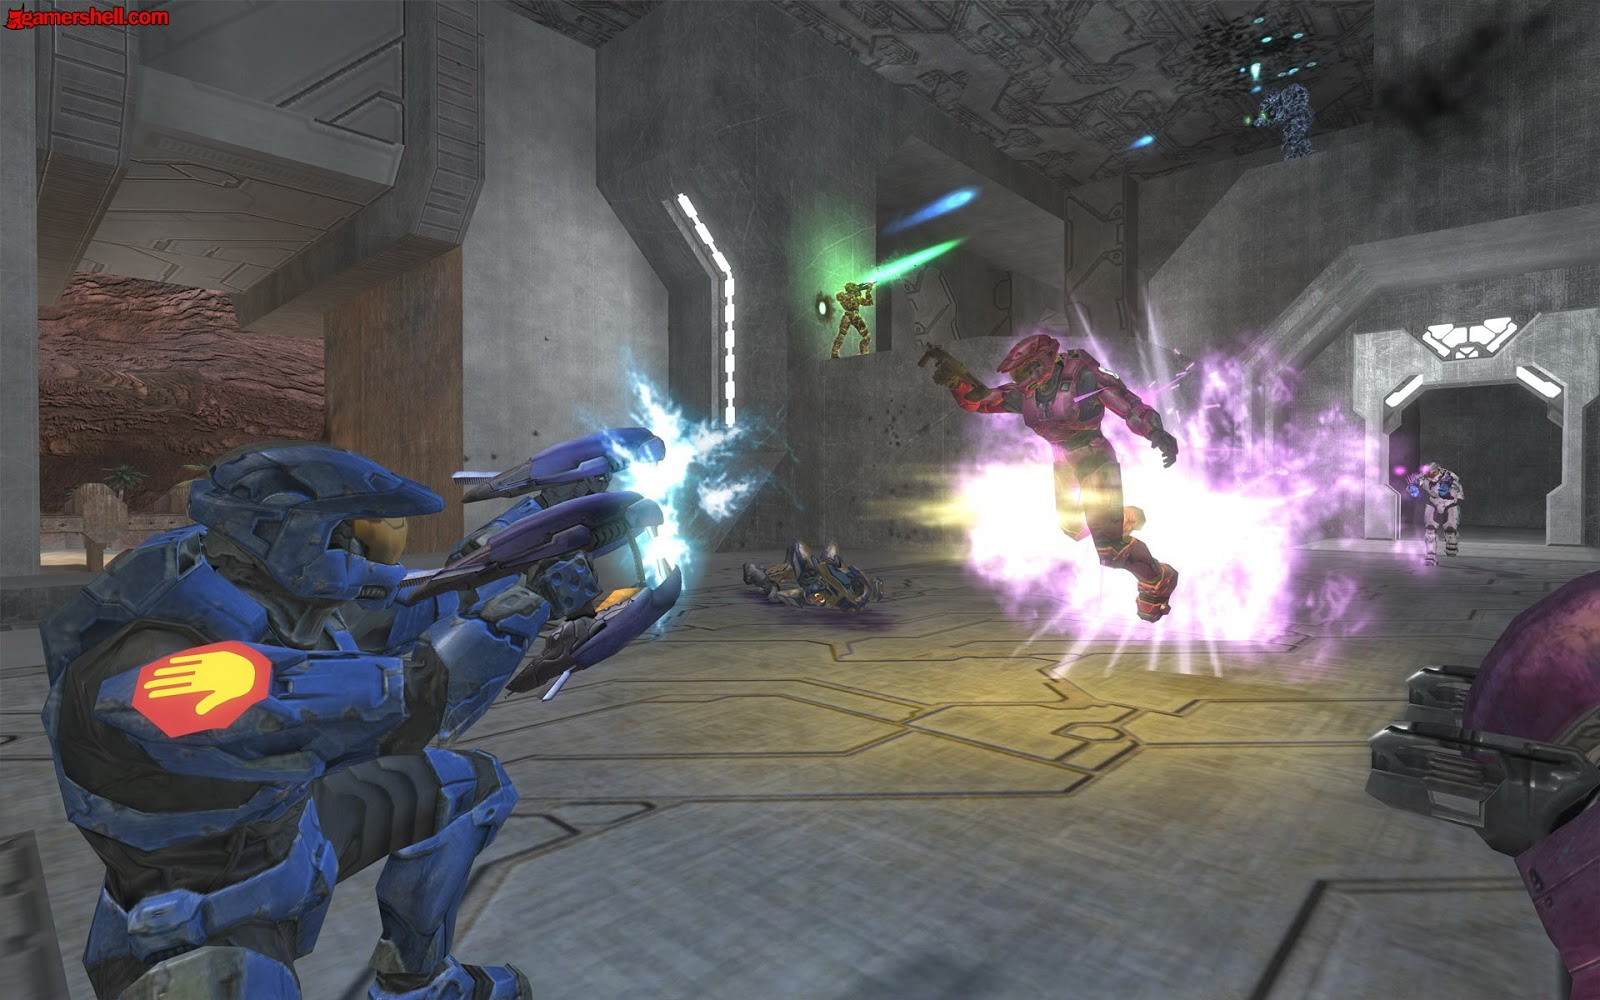 Halo 2 Pc Downloadclevervia